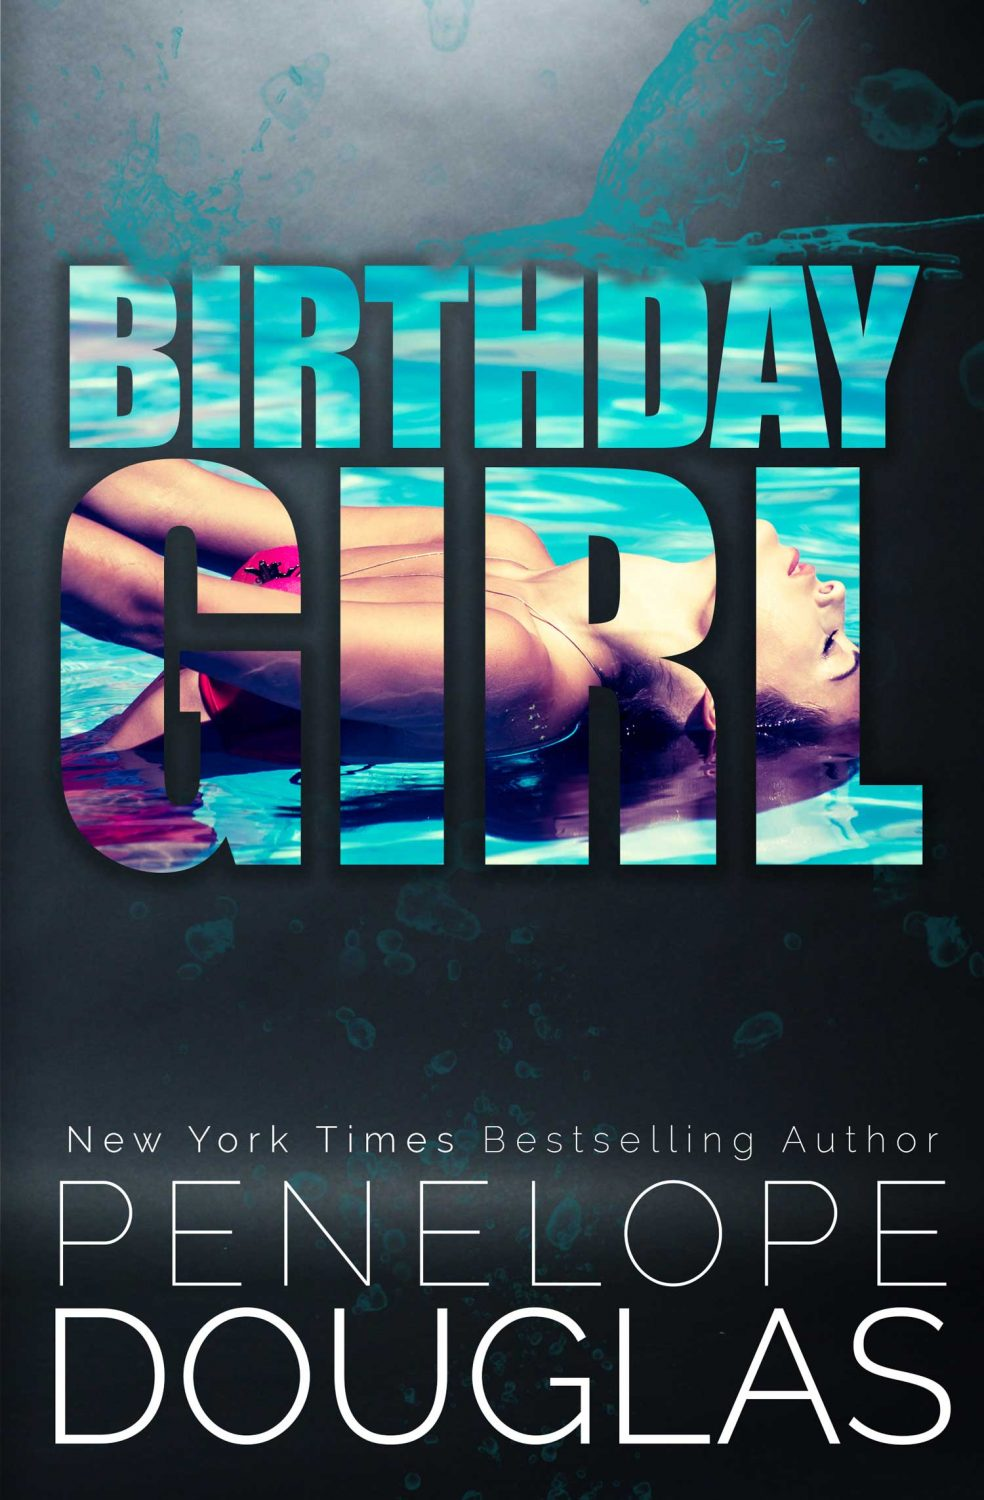 Blog Tour, Review, Excerpt & Teasers: Birthday Girl by Penelope Douglas